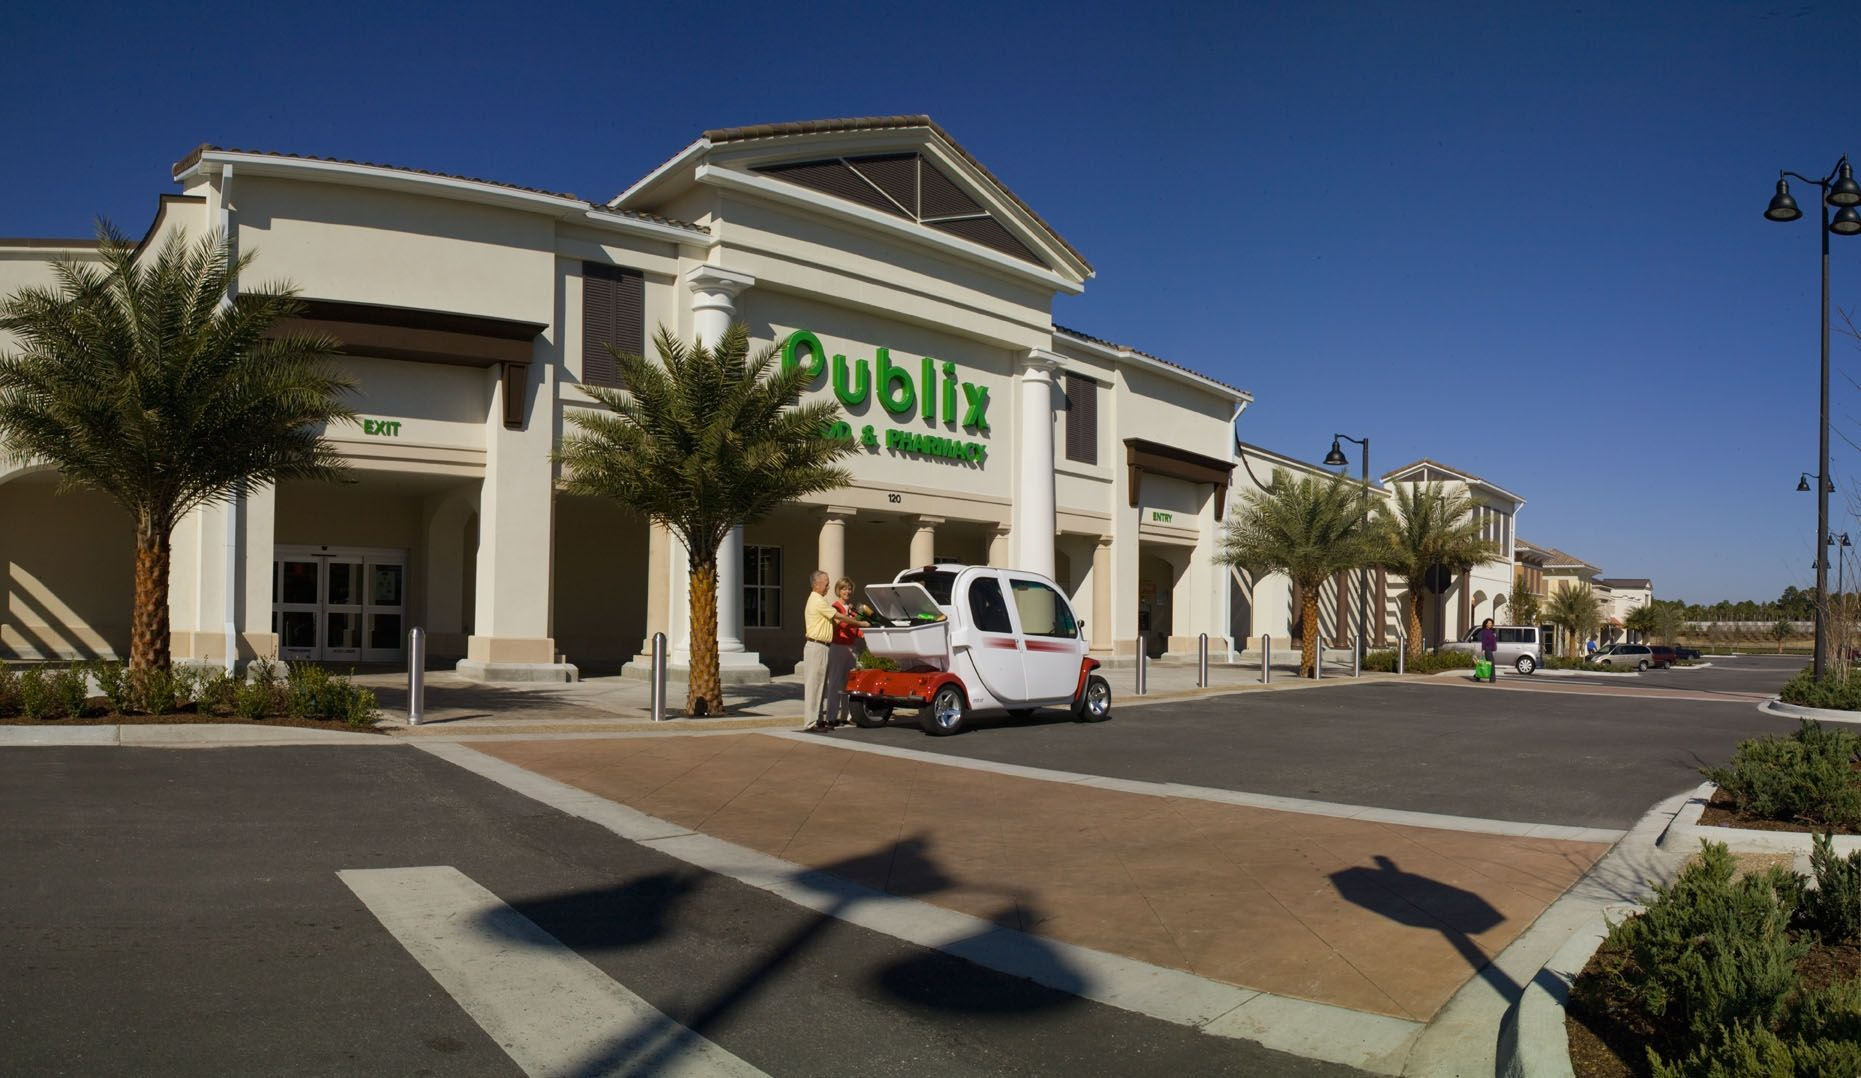 Nocatee's Town Center boasts the largest Publix in